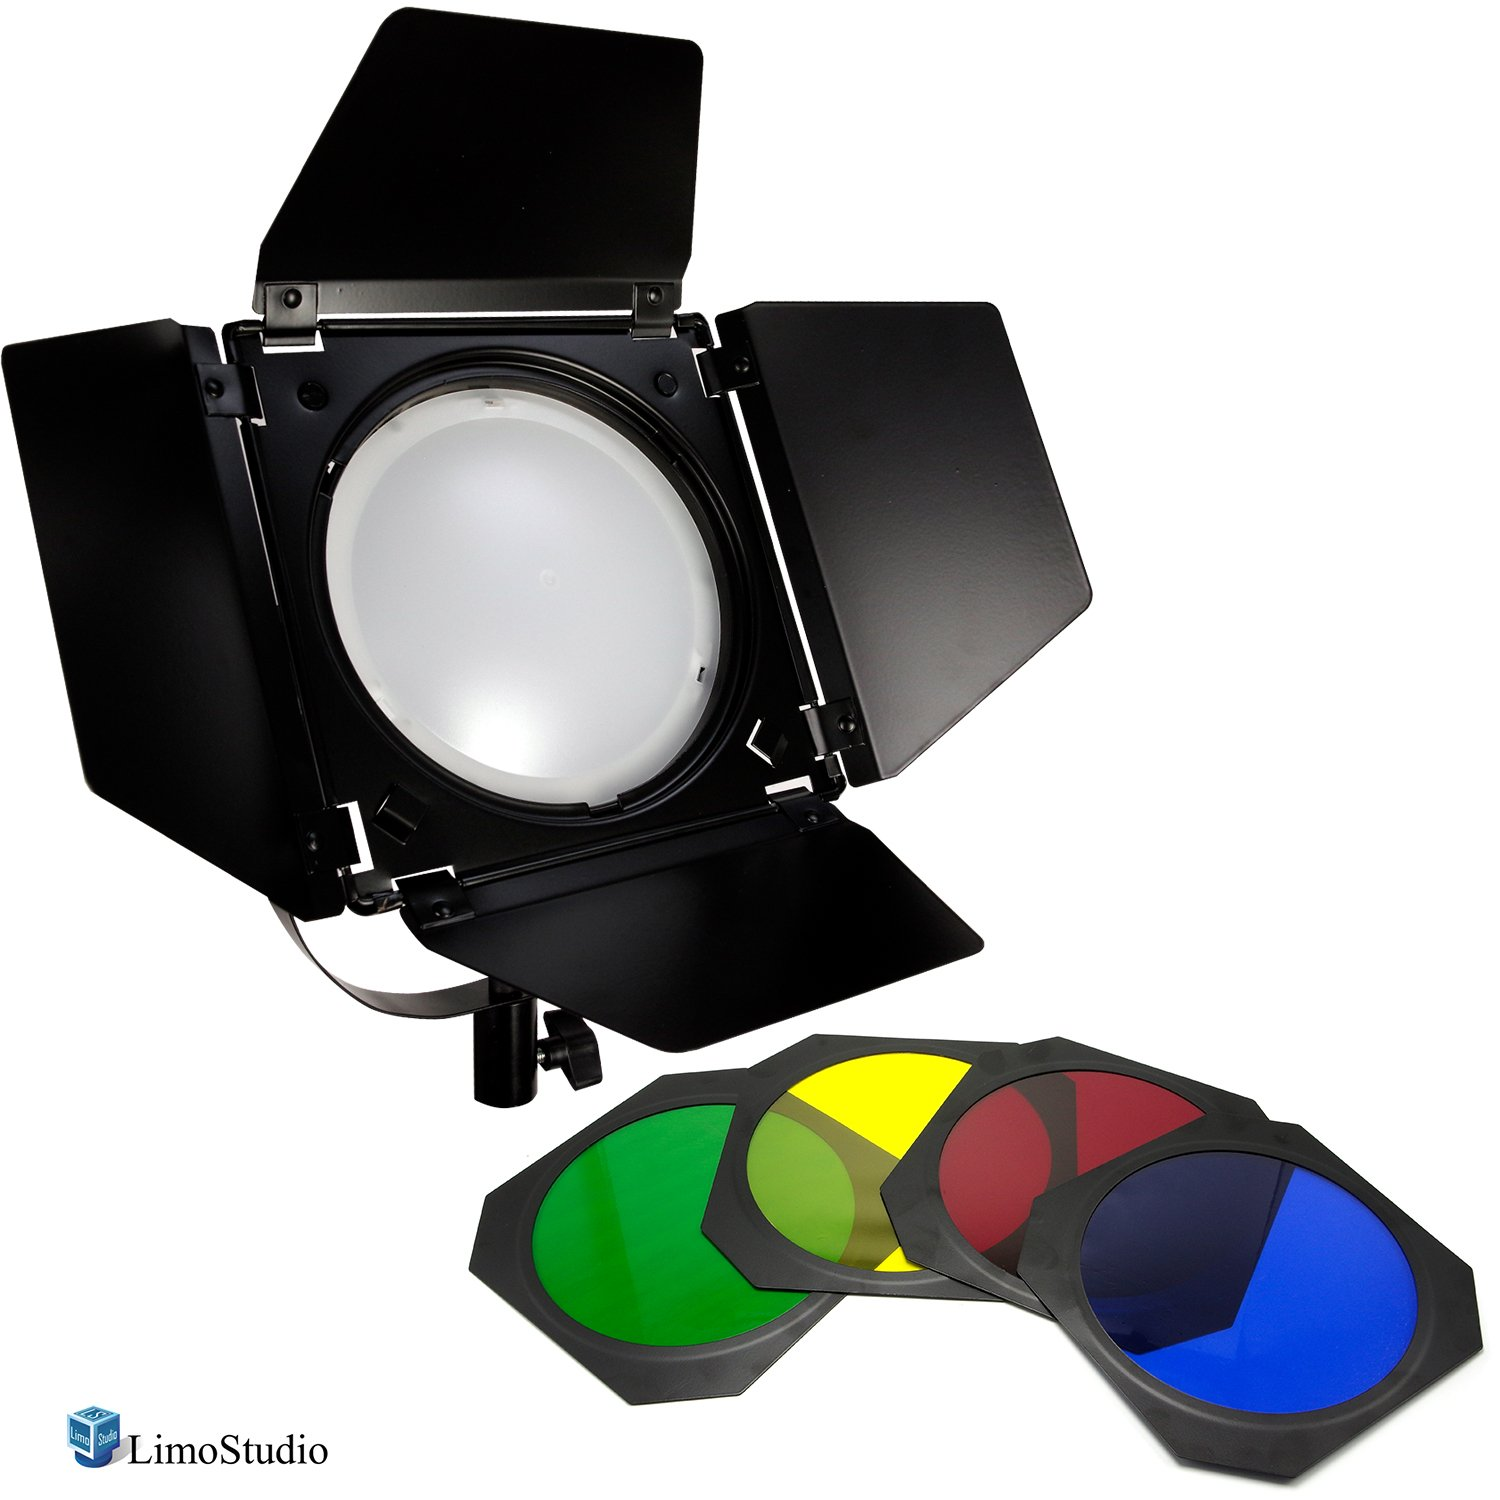 LimoStudio LED Barn Door Lighting Set, 4 Color Gel Filters for Professional Photography Lighting, Photography Studio, AGG2539